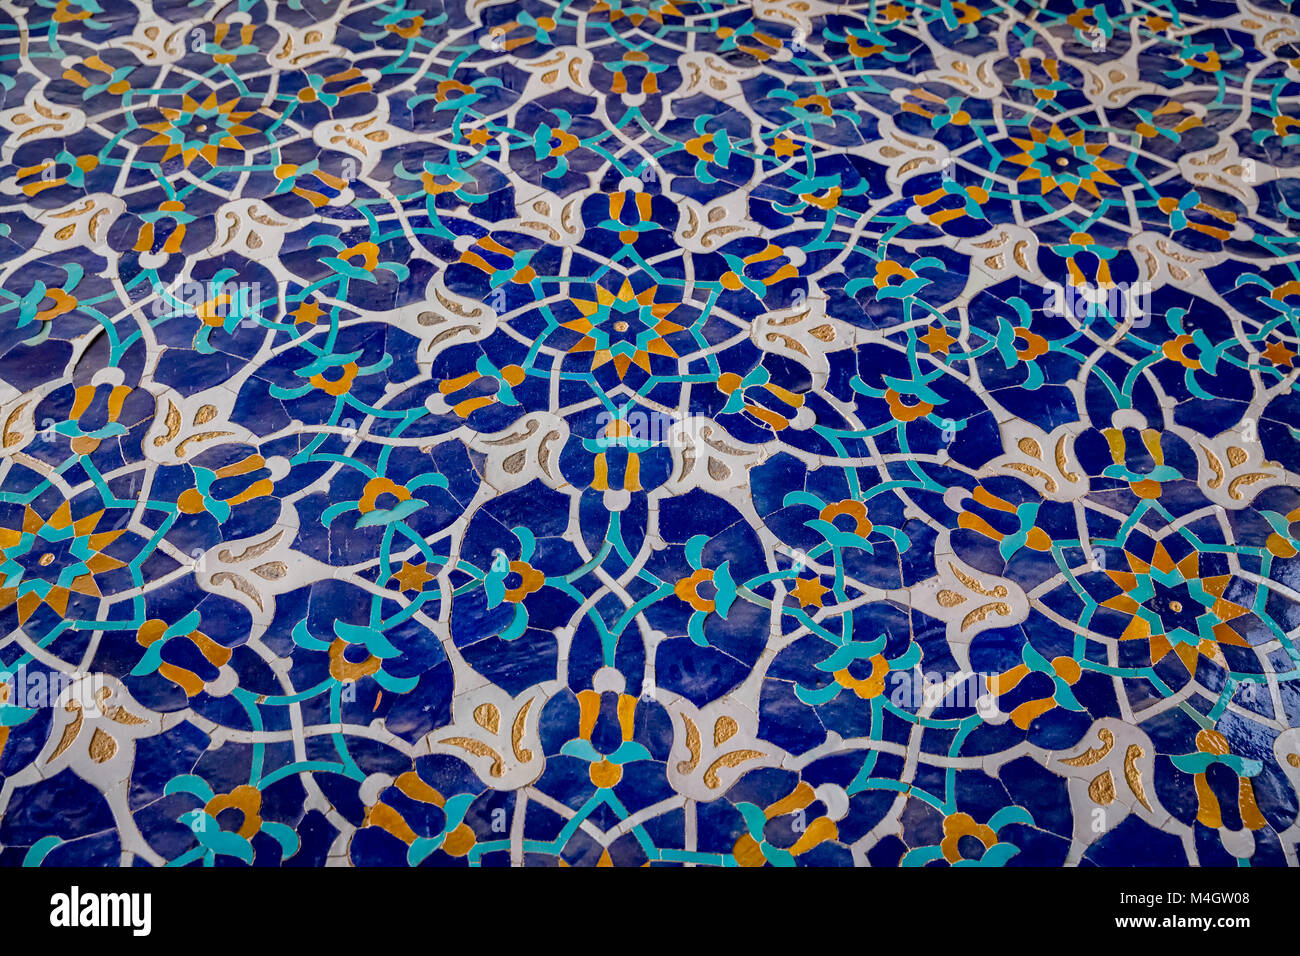 Colorful tiles in Iran Stock Photo: 174933144 - Alamy